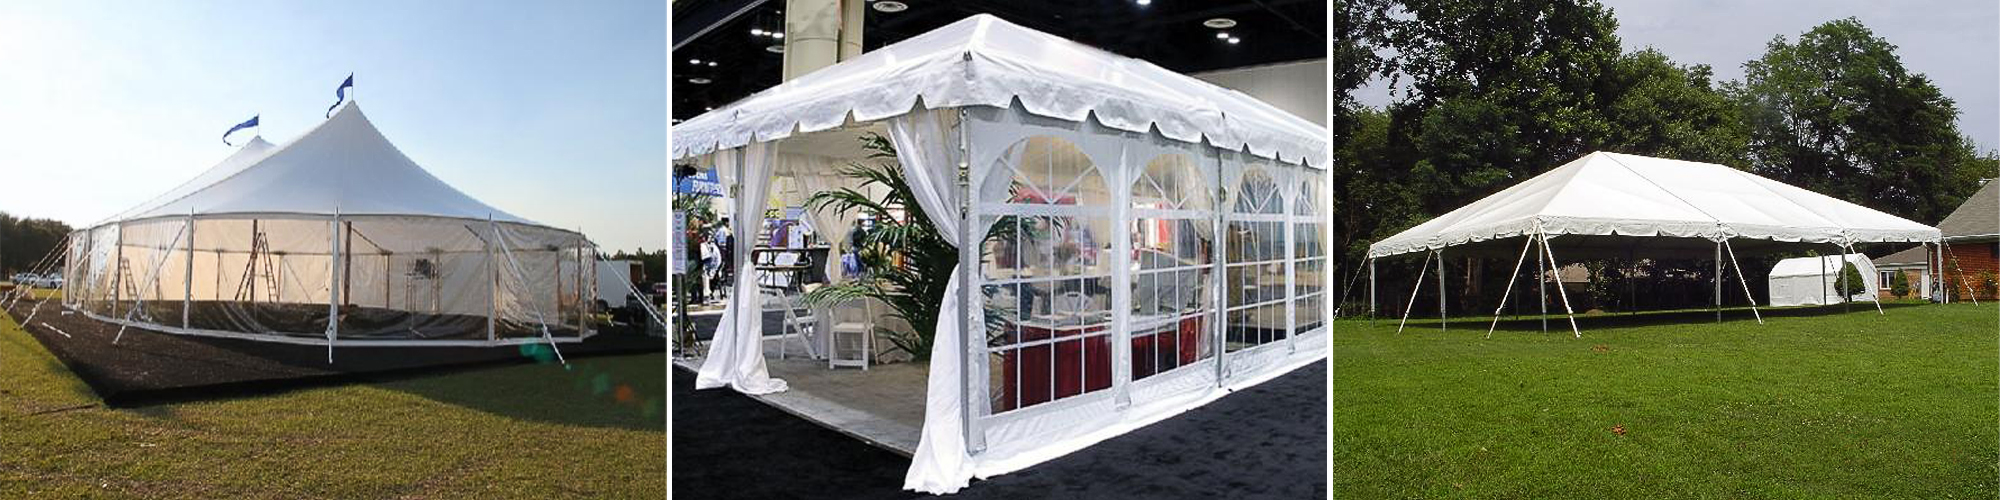 Party and Tent Rental in Baltimore, MD | Party Palace Rentals, LLC